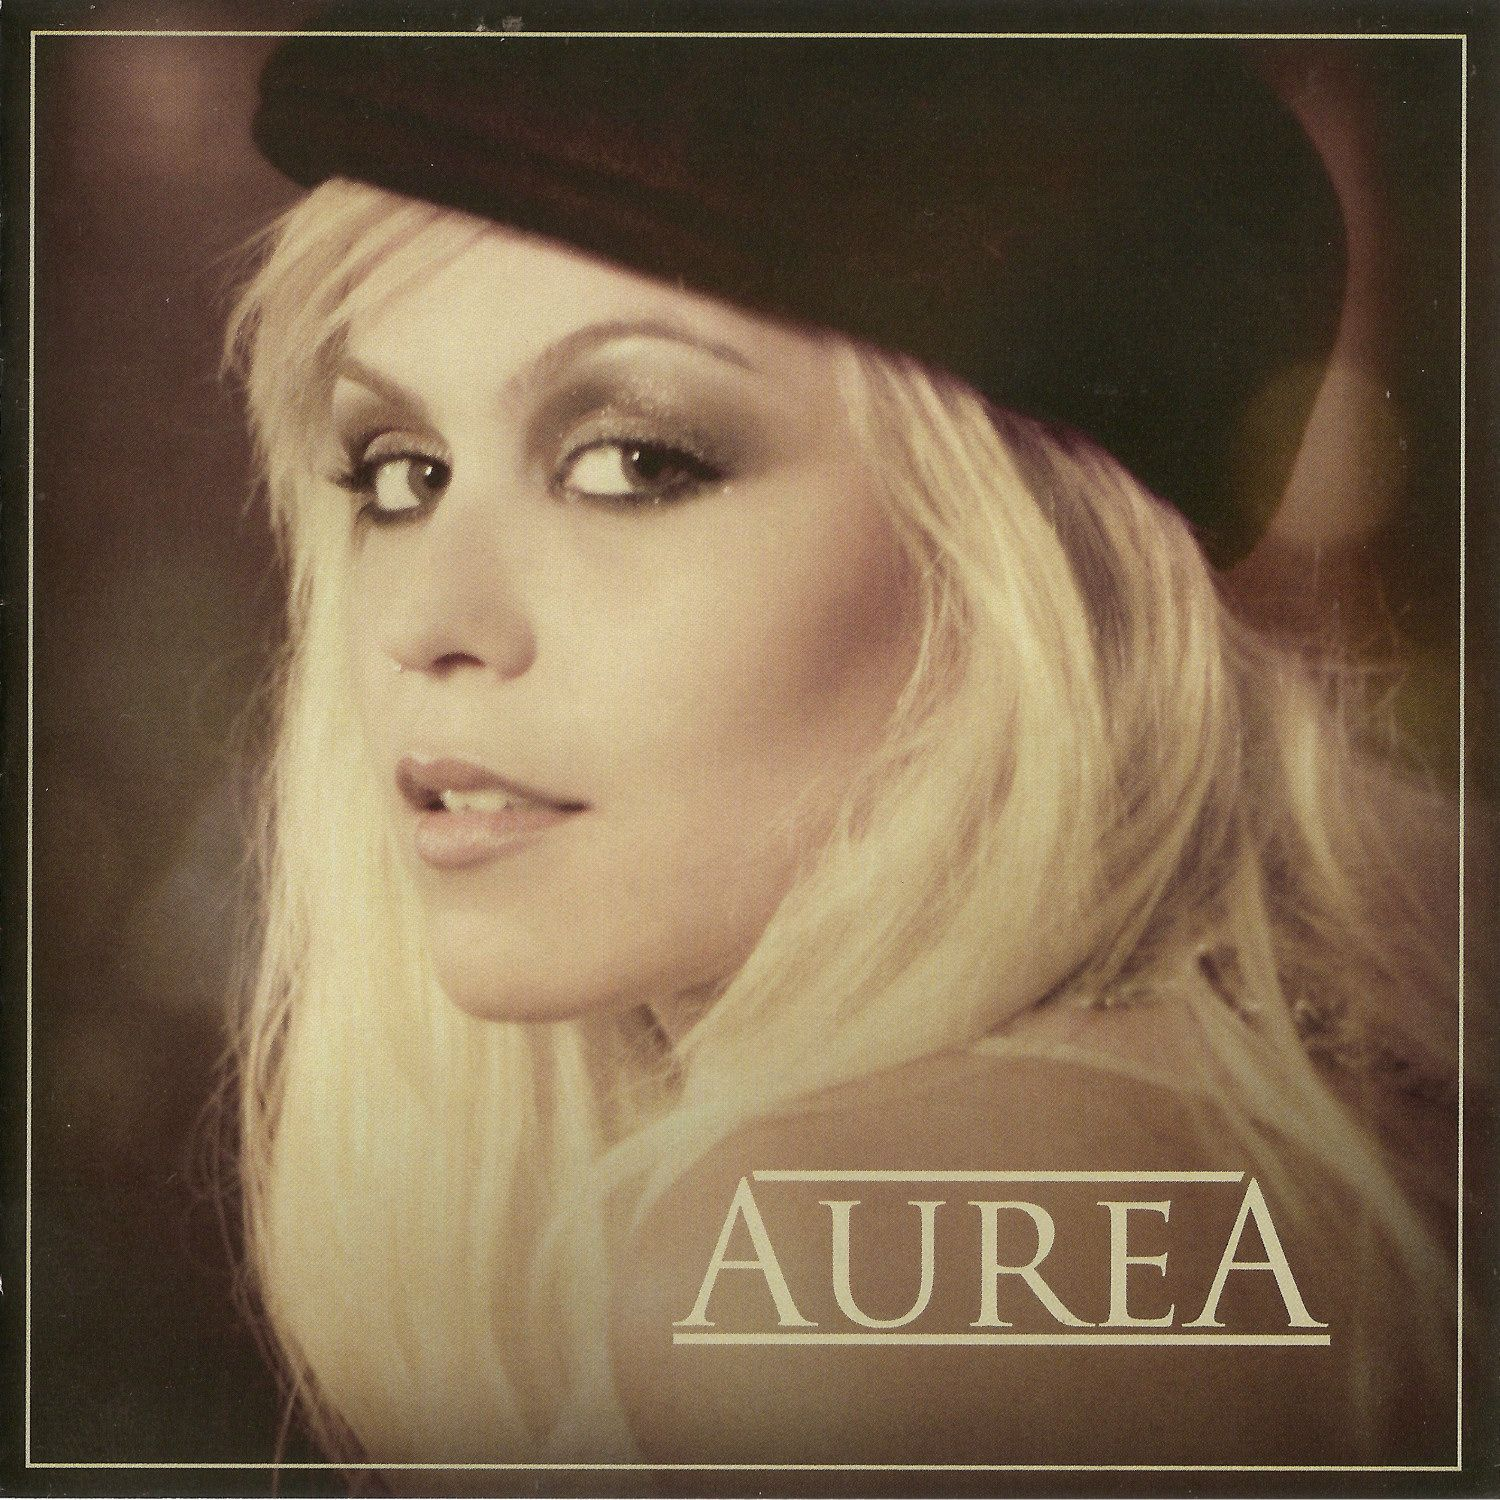 Aurea - Aurea album cover